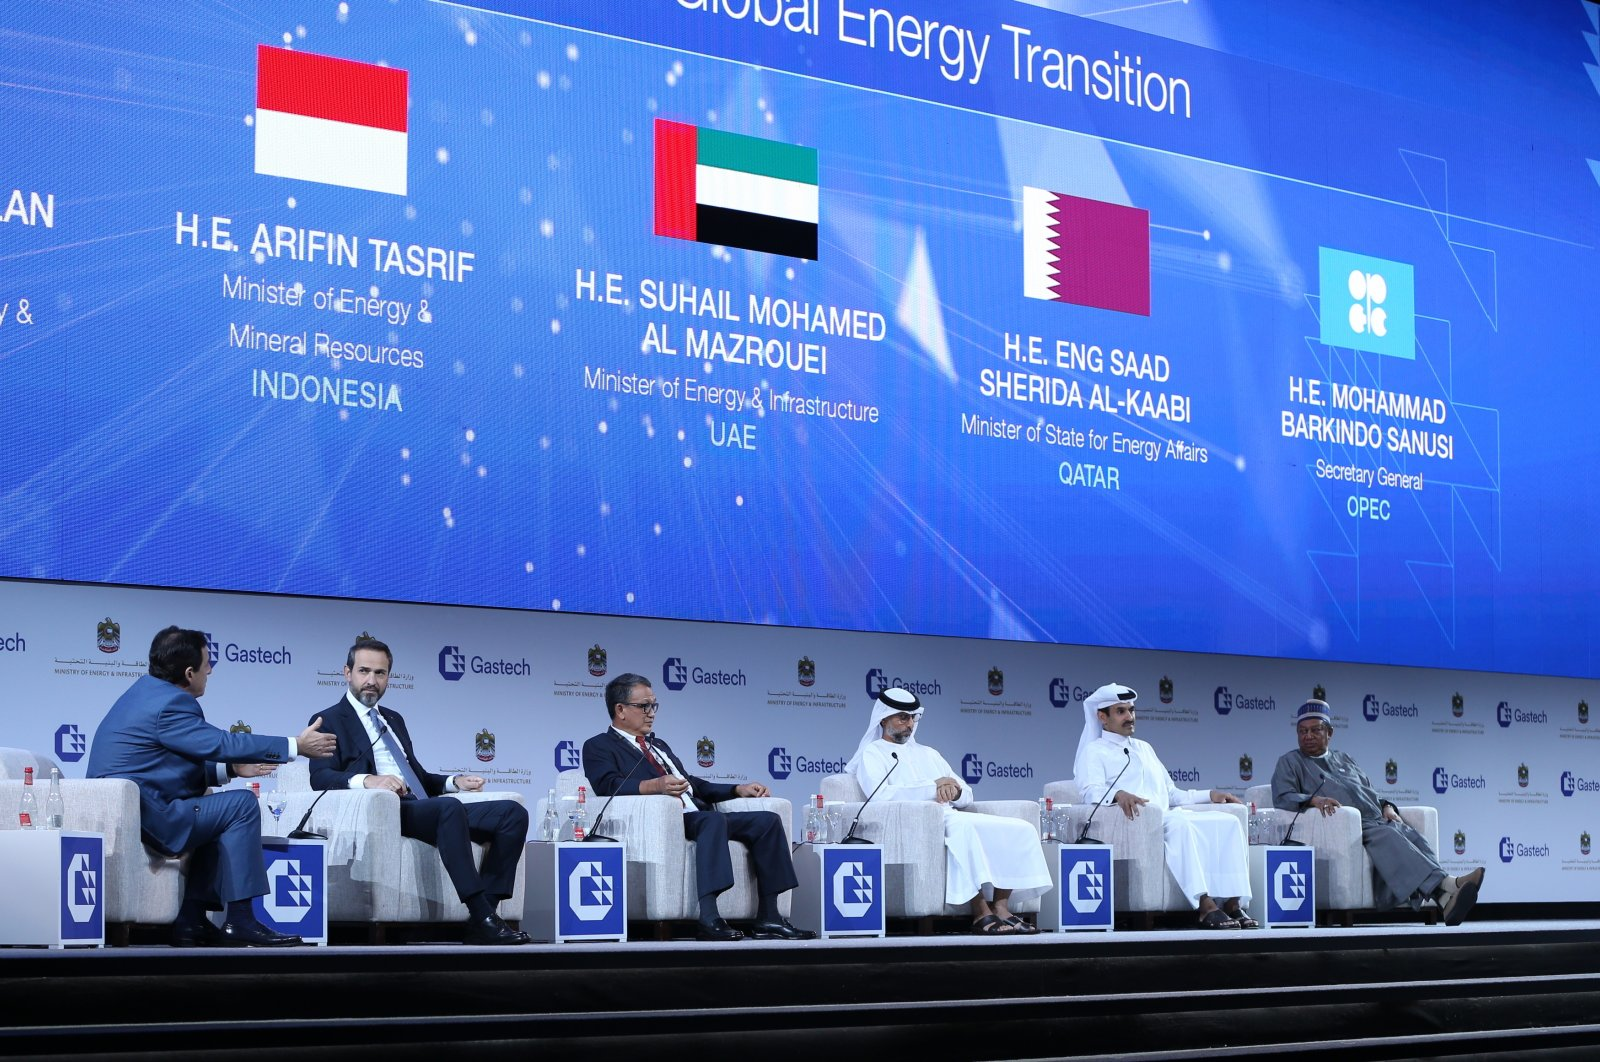 Turkey's Deputy Energy and Natural Resources Minister Alparslan Bayraktar (2nd L) and other officials and executives attend a session during the Gastech 2021 conference in Dubai, United Arab Emirates, Sept. 21, 2021.